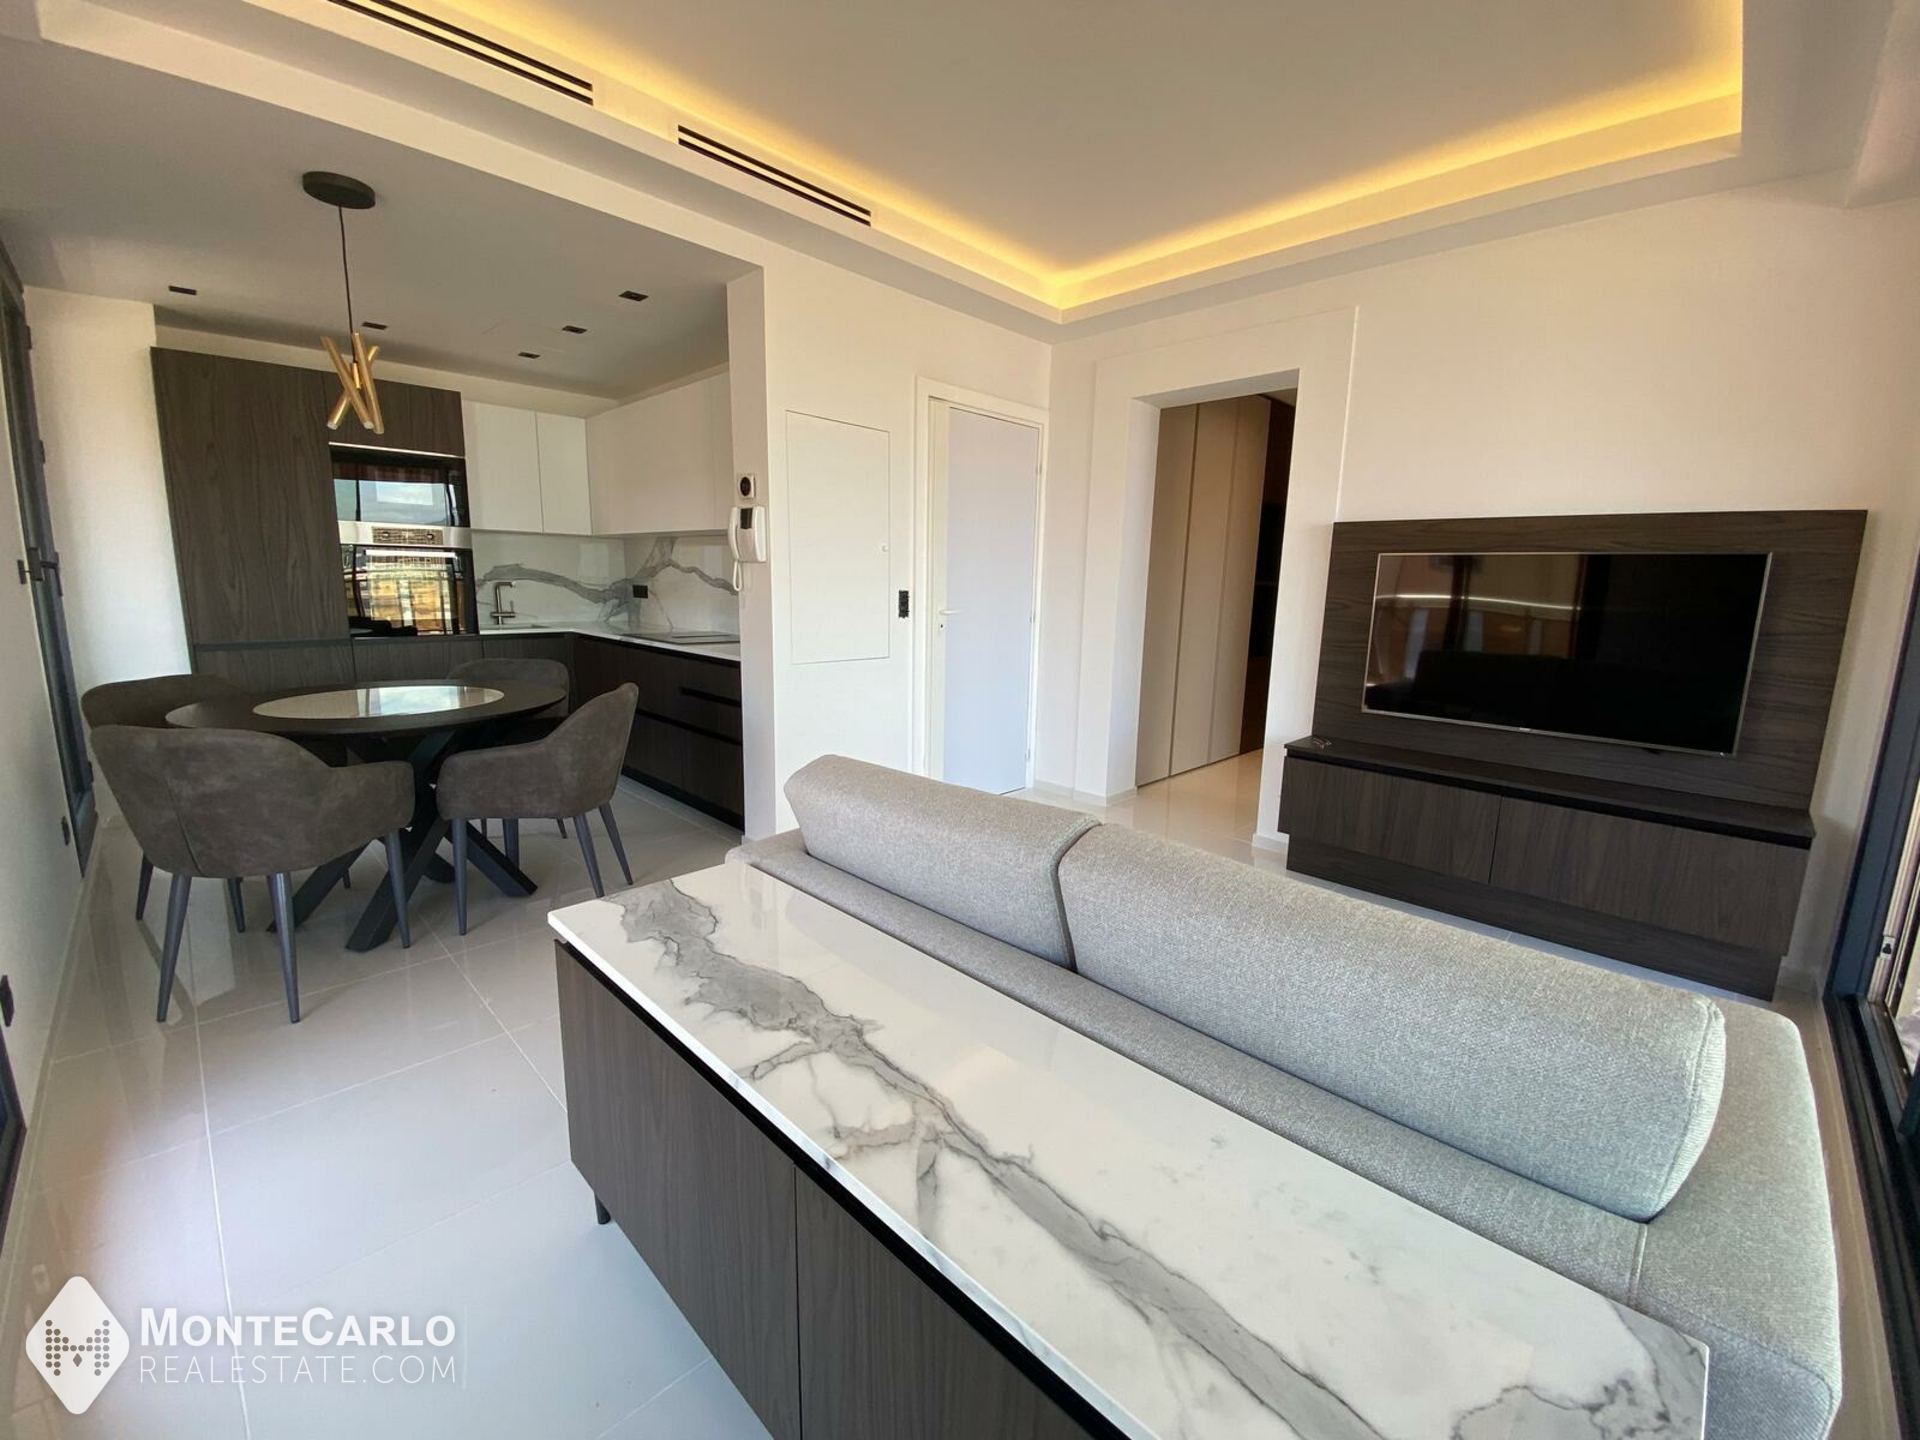 For sale Buckingham Palace - Apartment / 2 rooms : 4 350 000 €   Monte-Carlo Real Estate [HP-BK007]